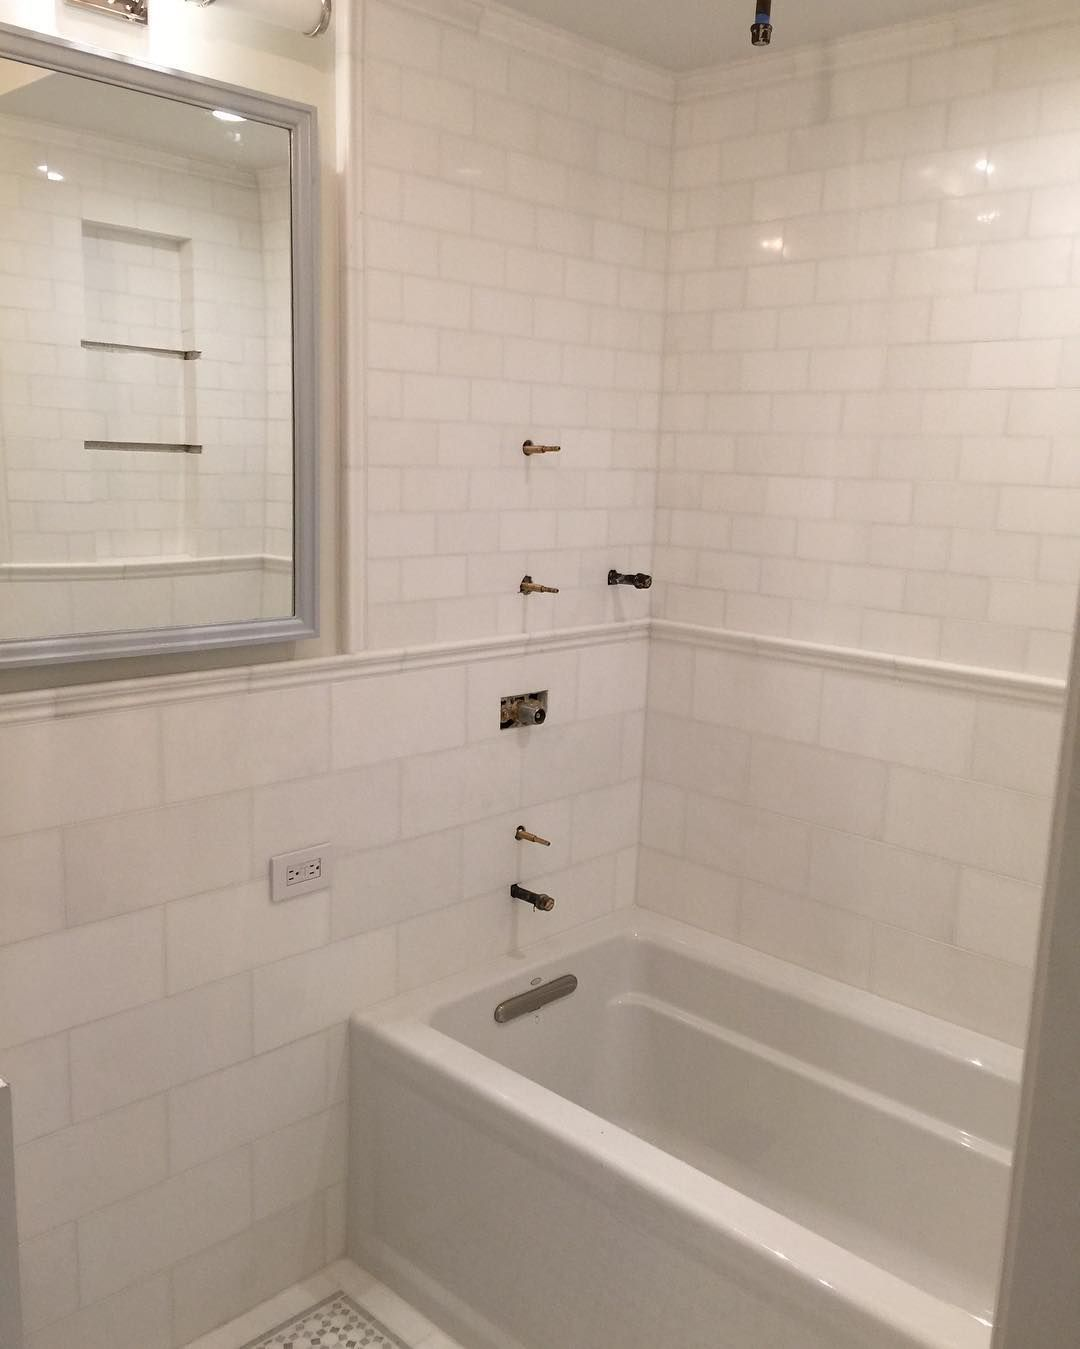 Ready For Plumbing Finishes Bathroom Tile Renovation Nyccontractor Nycrealestate By Eddysgeneralconstruction